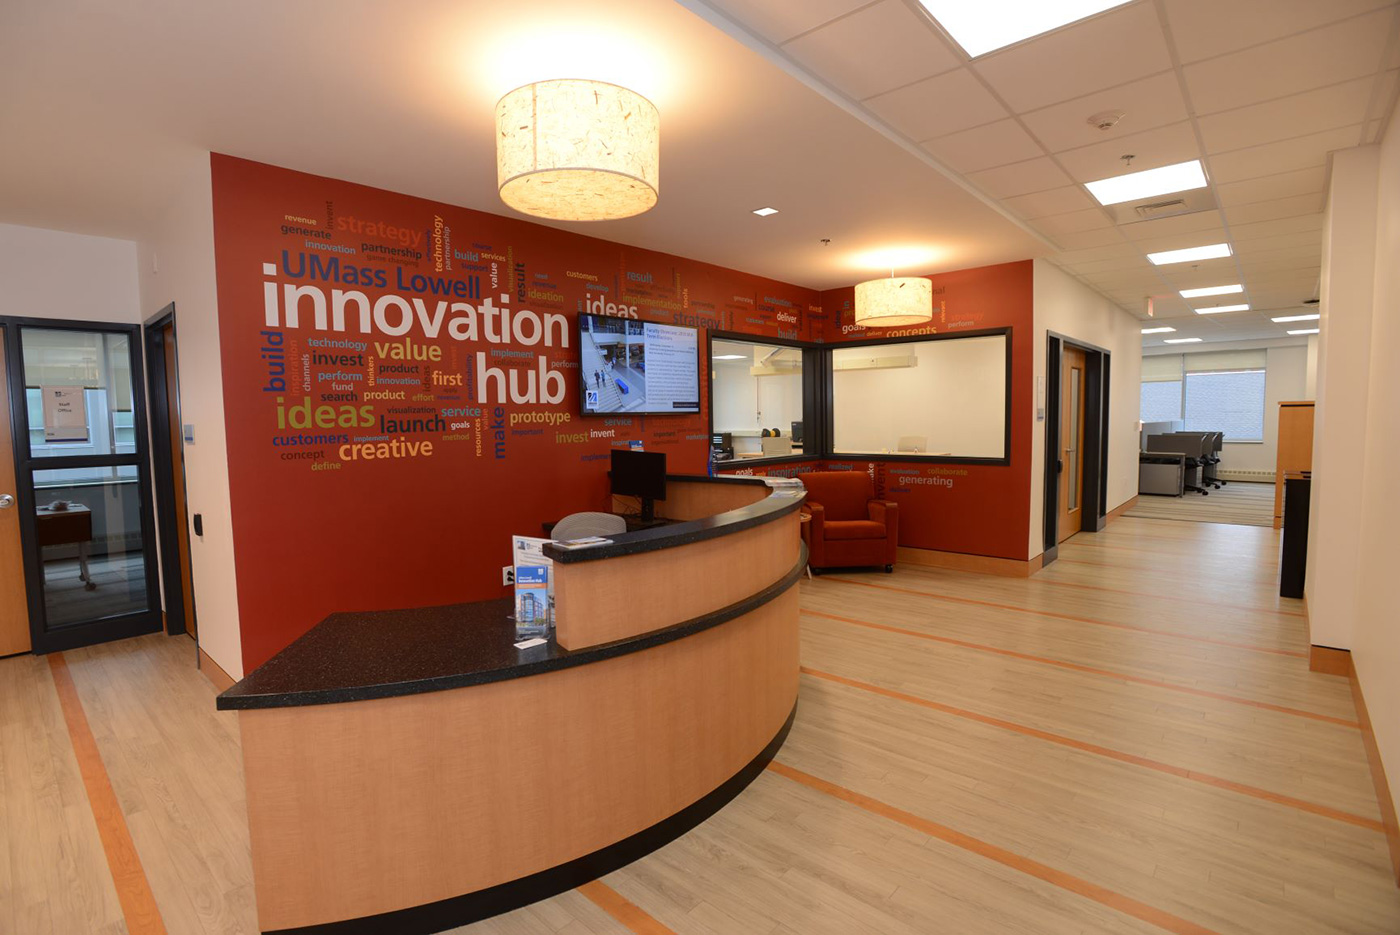 Interior image of iHub Haverhill building. The UMass Lowell Innovation Hub offers premiere coworking space in both Lowell and Haverhill providing you the benefits of a research university at a price that startups can afford.